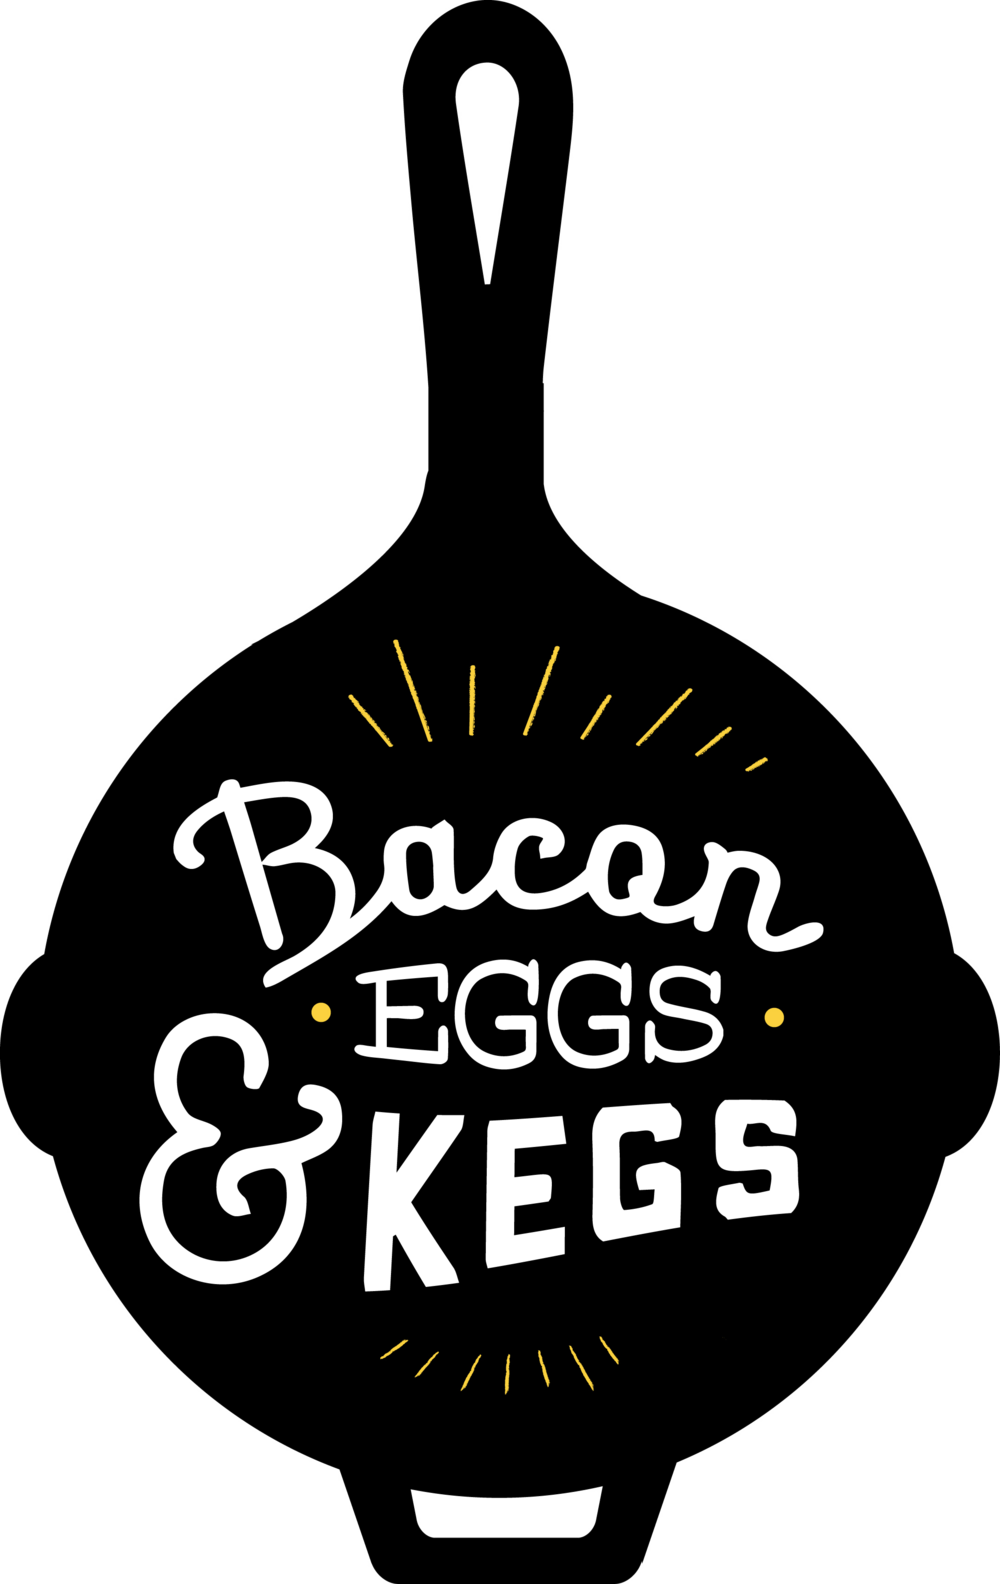 Bacon-Eggs-Kegs